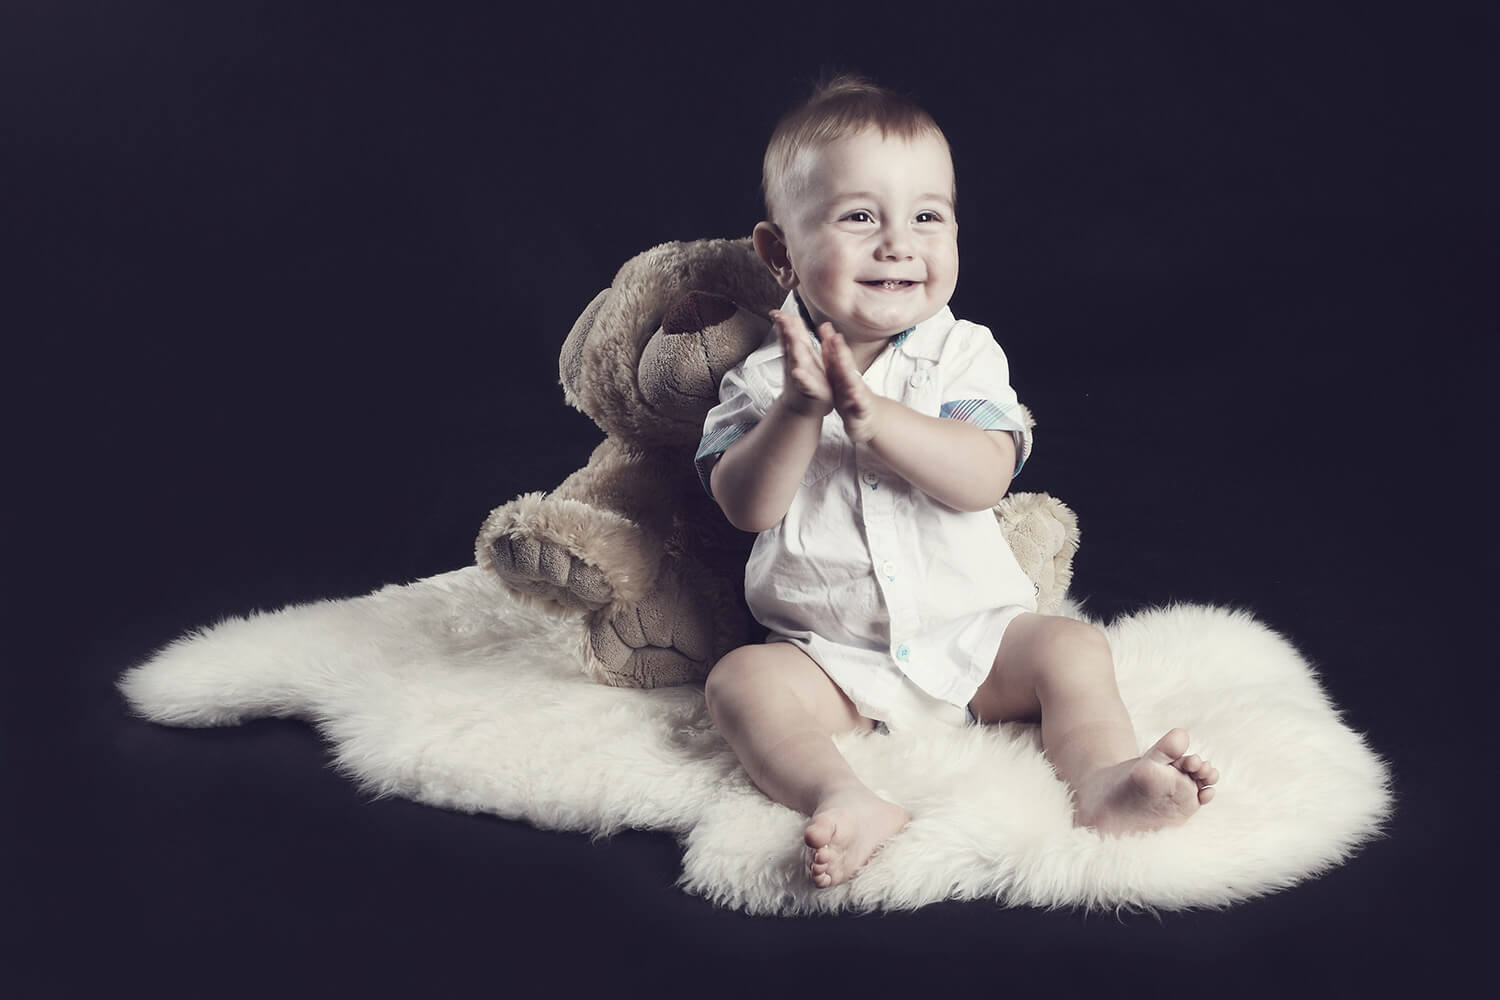 family photo of a toddler on a fur with a teddy bear behind his back on a dark background